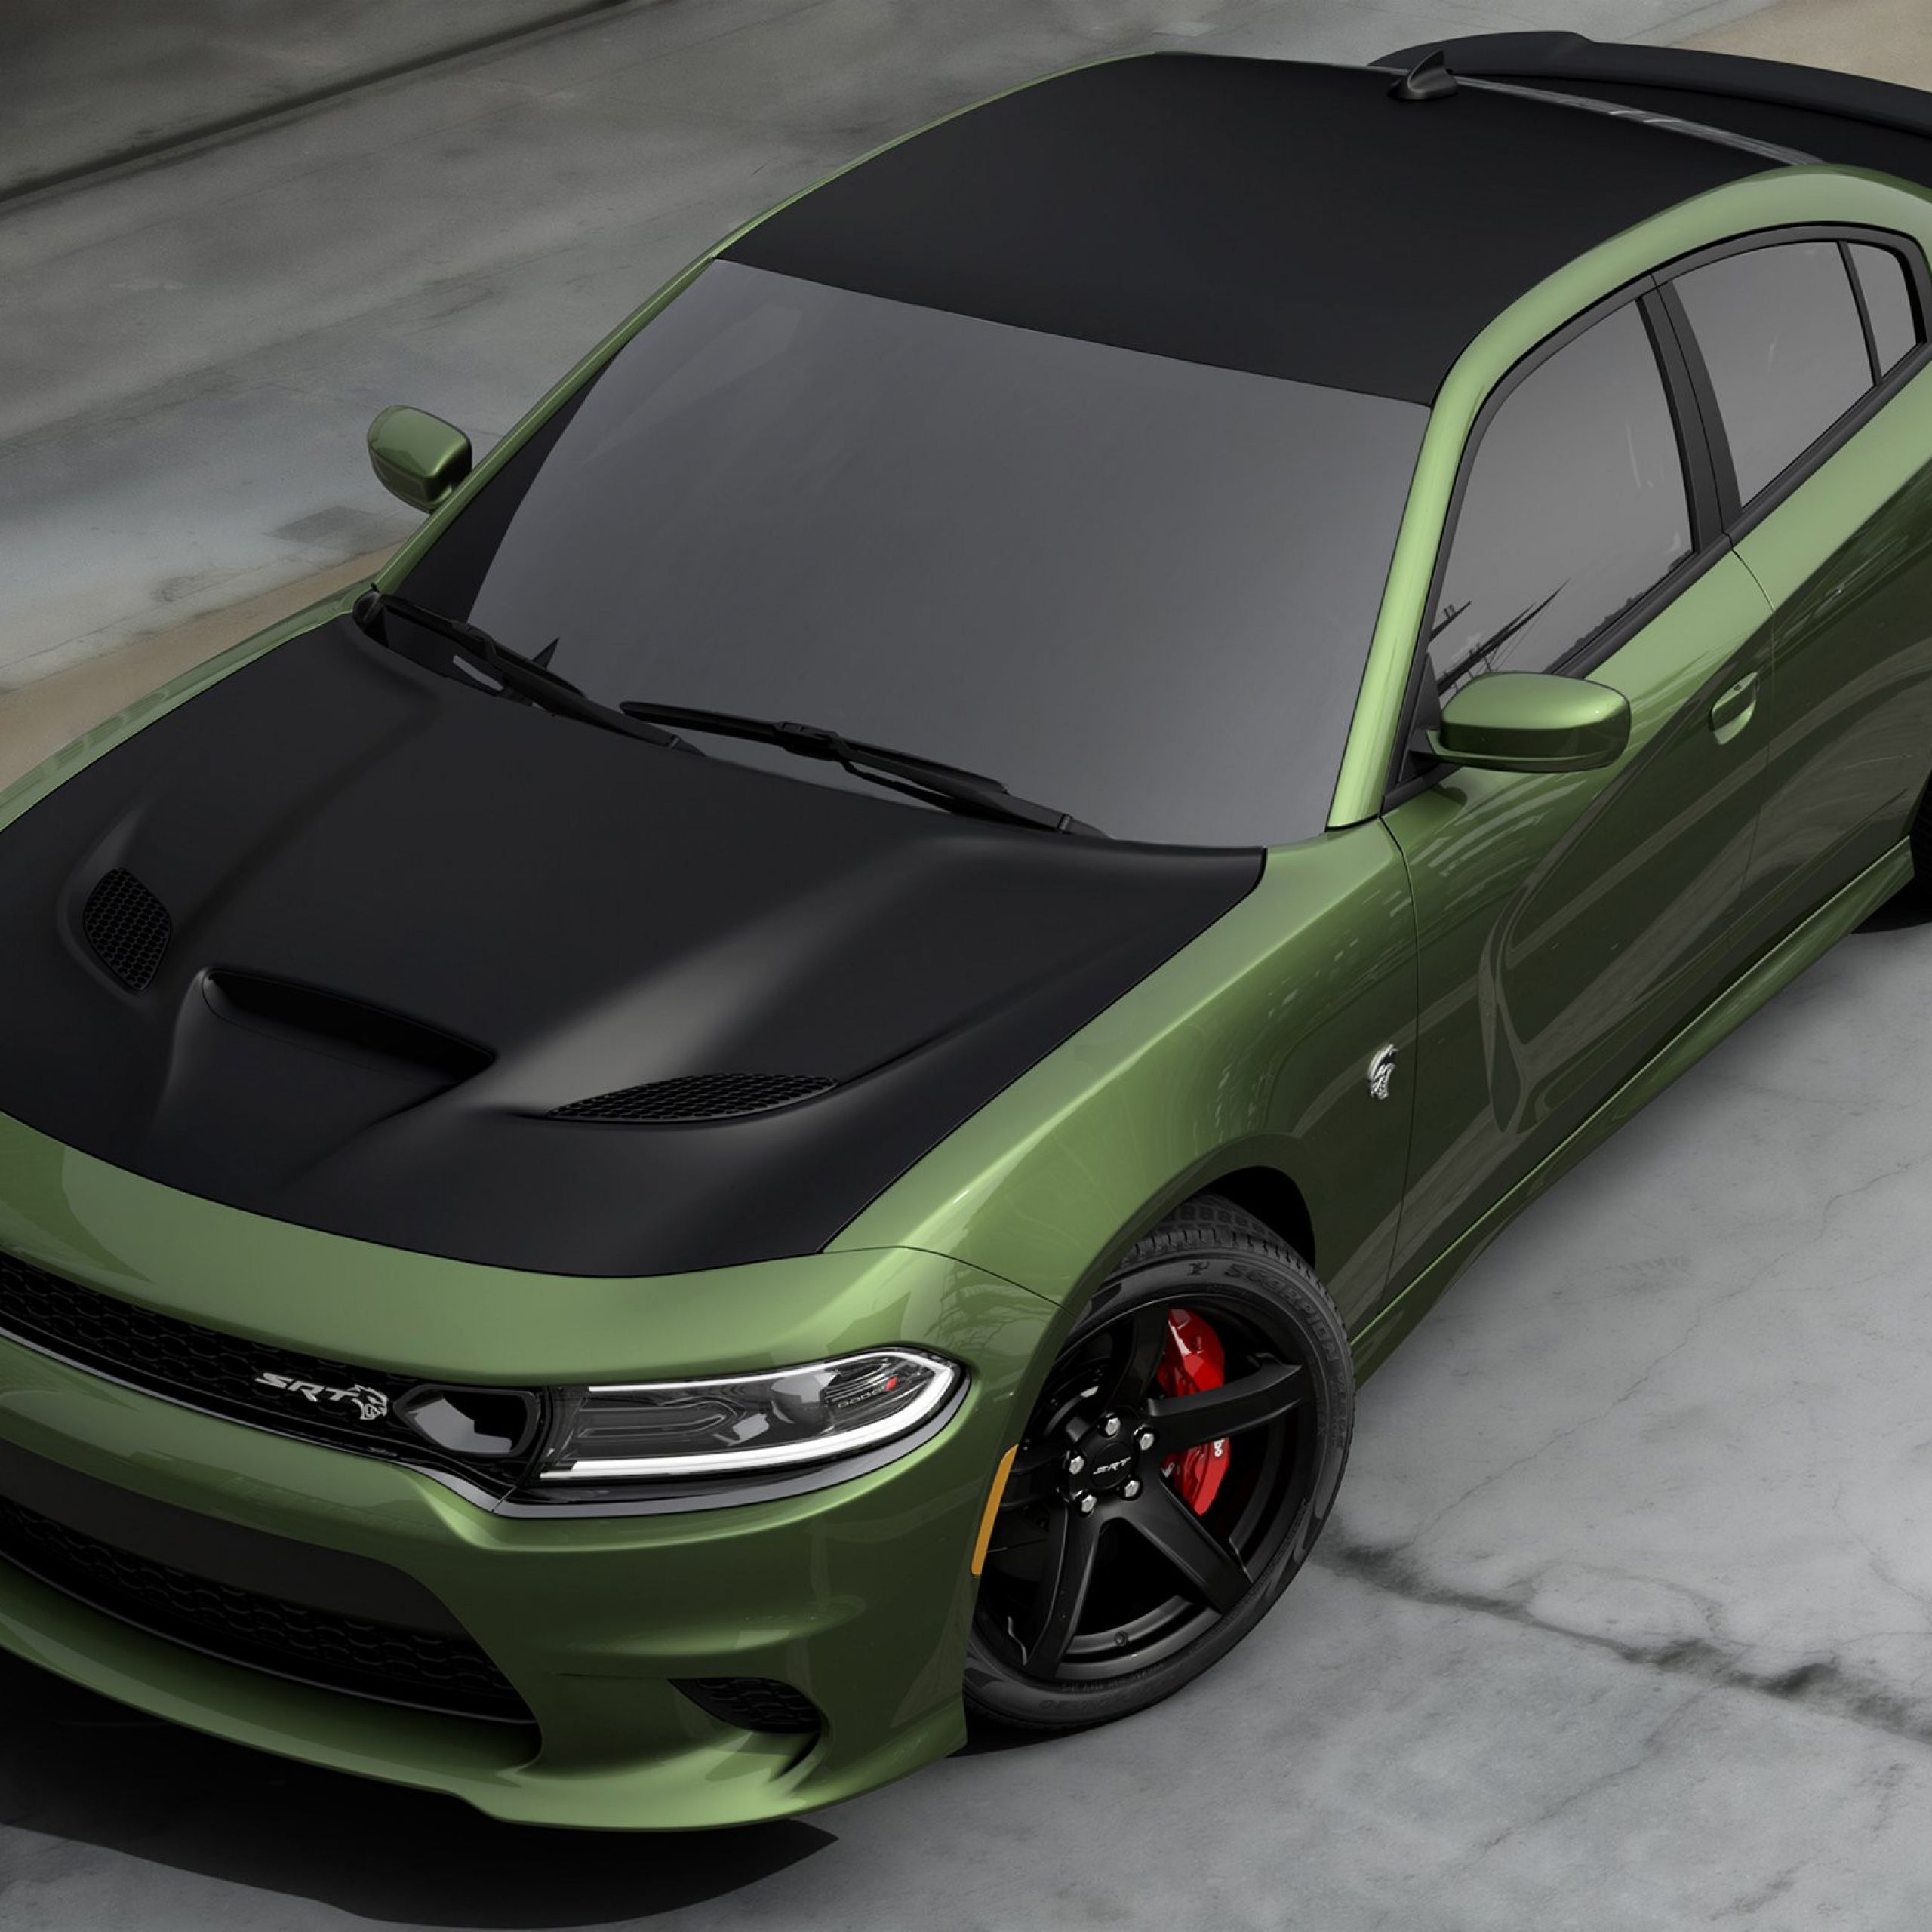 2018 Dodge Charger Sxt Lovely 2020 Dodge Charger Stars & Stripes Edition